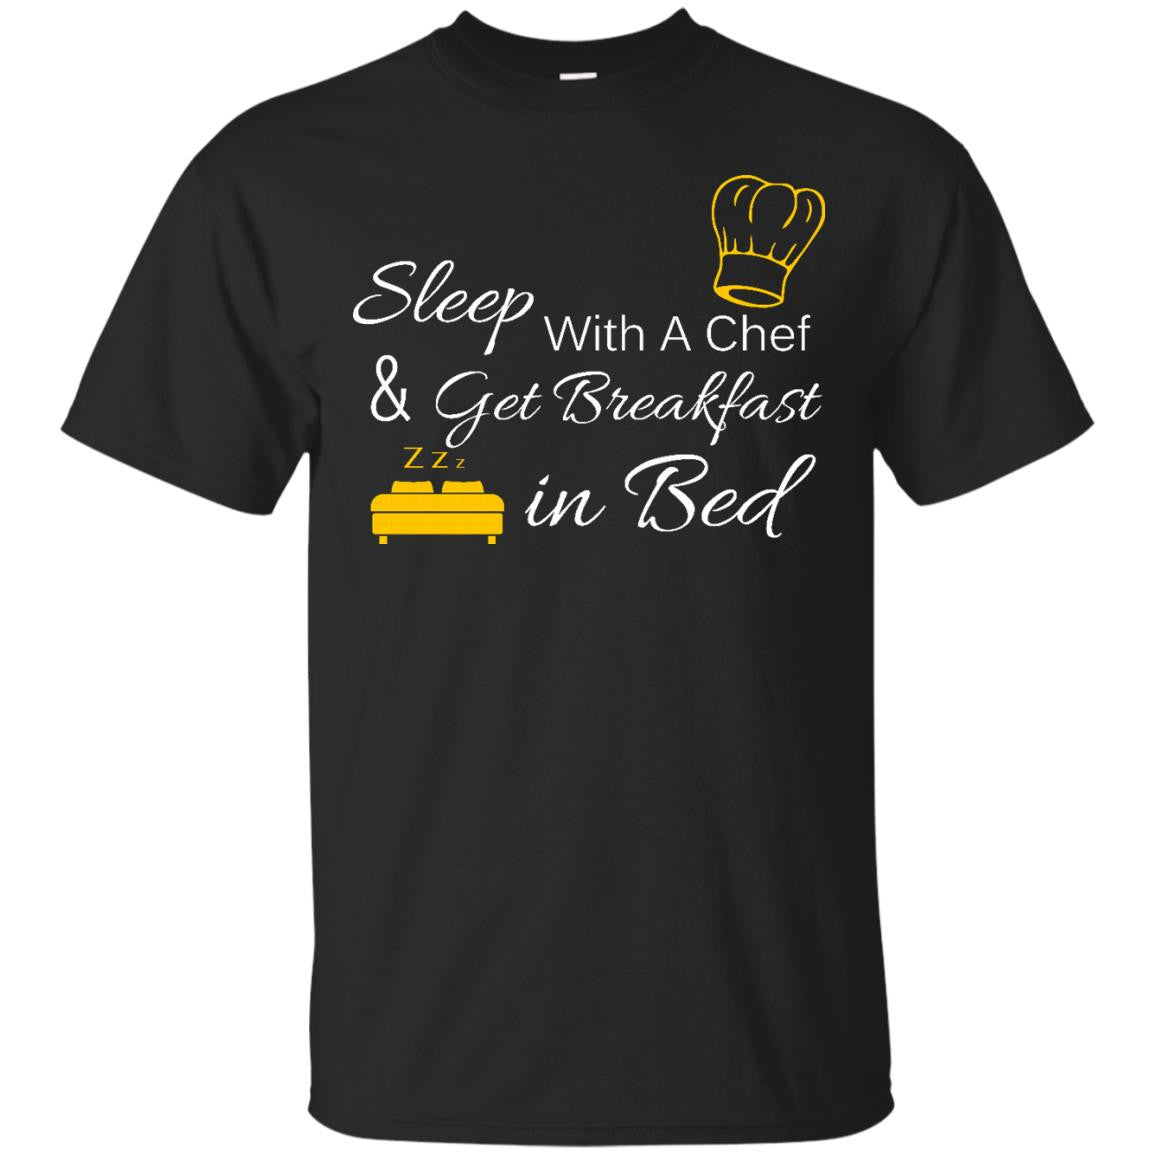 Sleep With a Chef & Get Breakfast in Bed T-Shirt